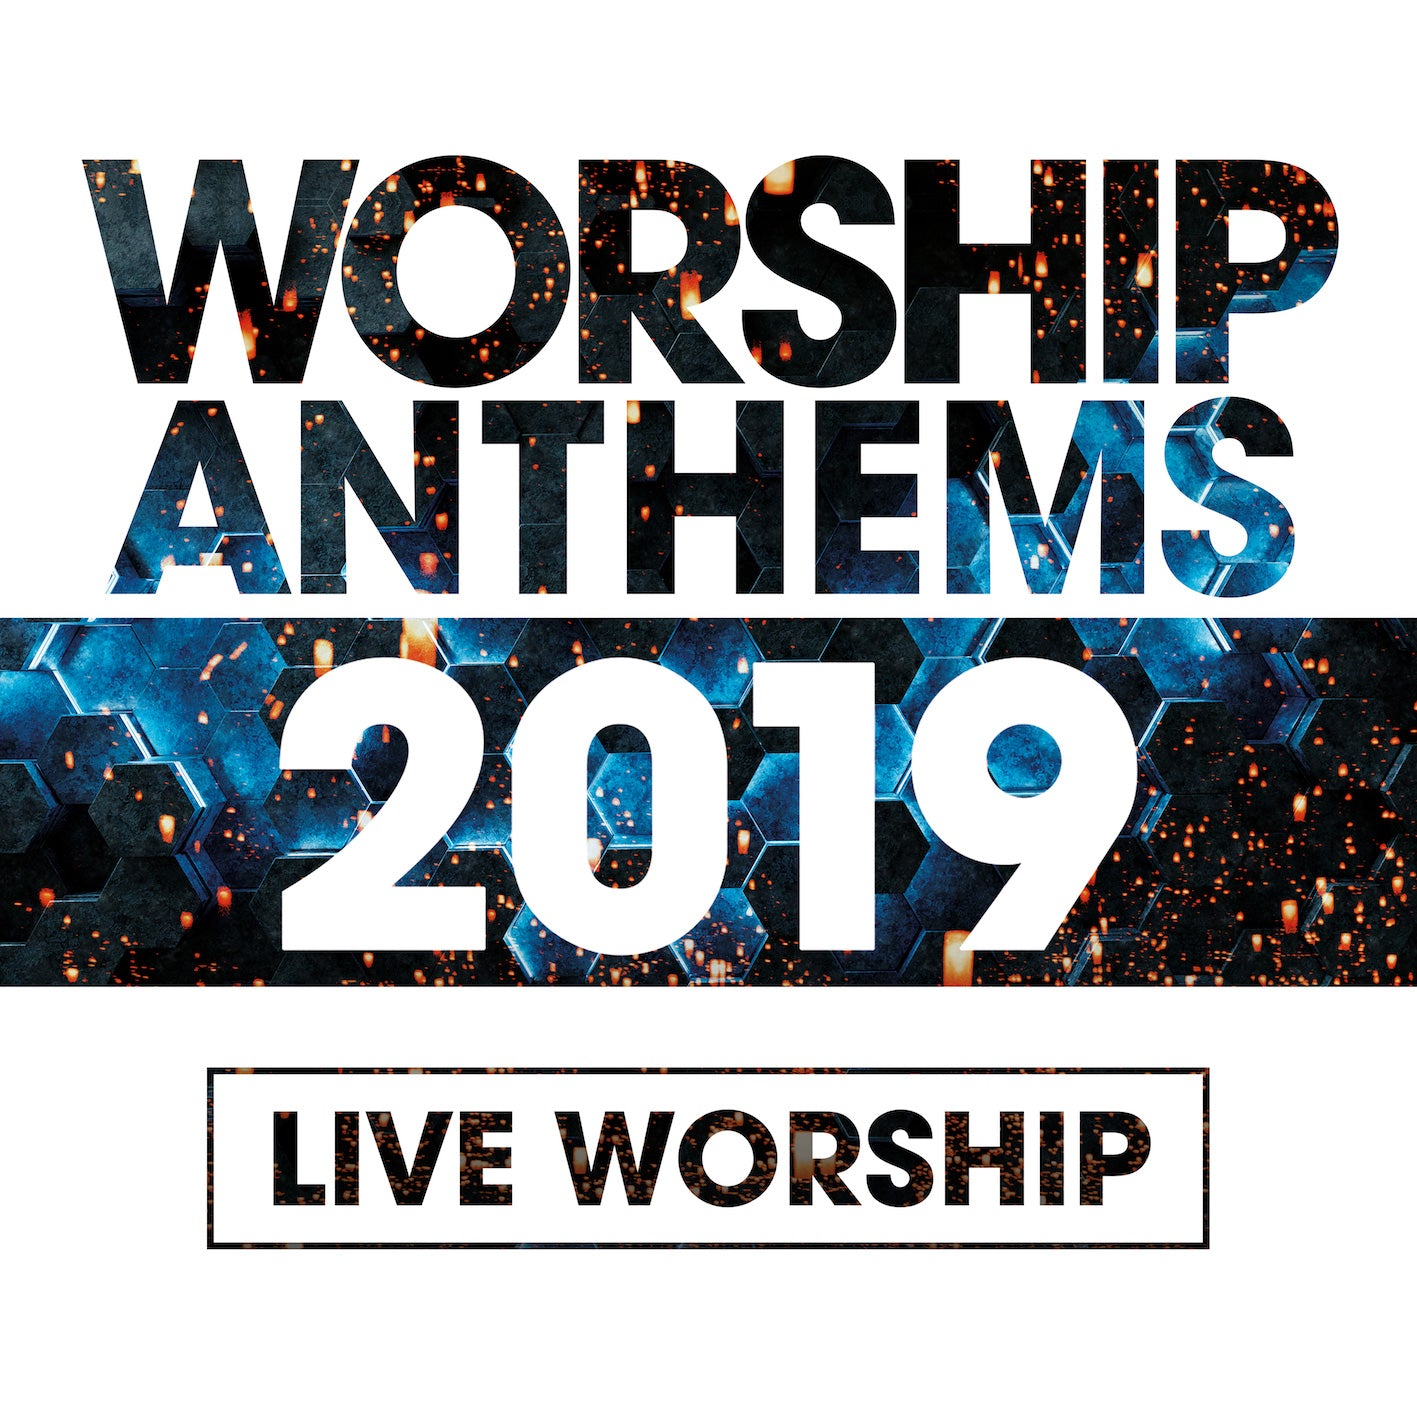 2020 Christmas Cd Releases 2020 Christmas Cds New Releases | Ypdymg.topnewyear2020song.info